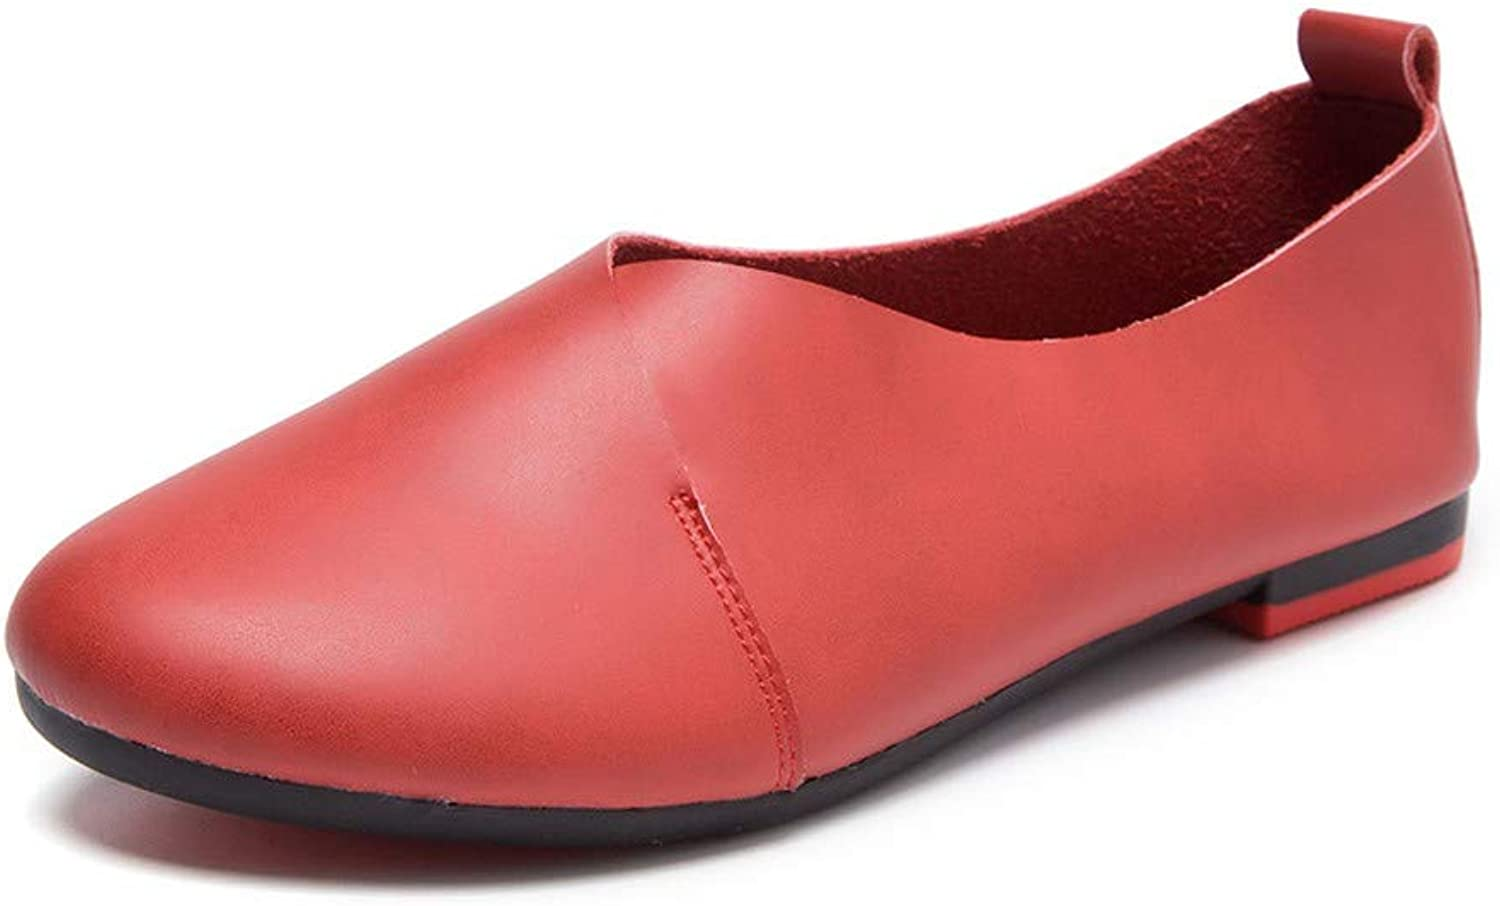 MetY Women's Leather Loafers Casual Slip-on Moccasins Comfort Driving Flats shoes